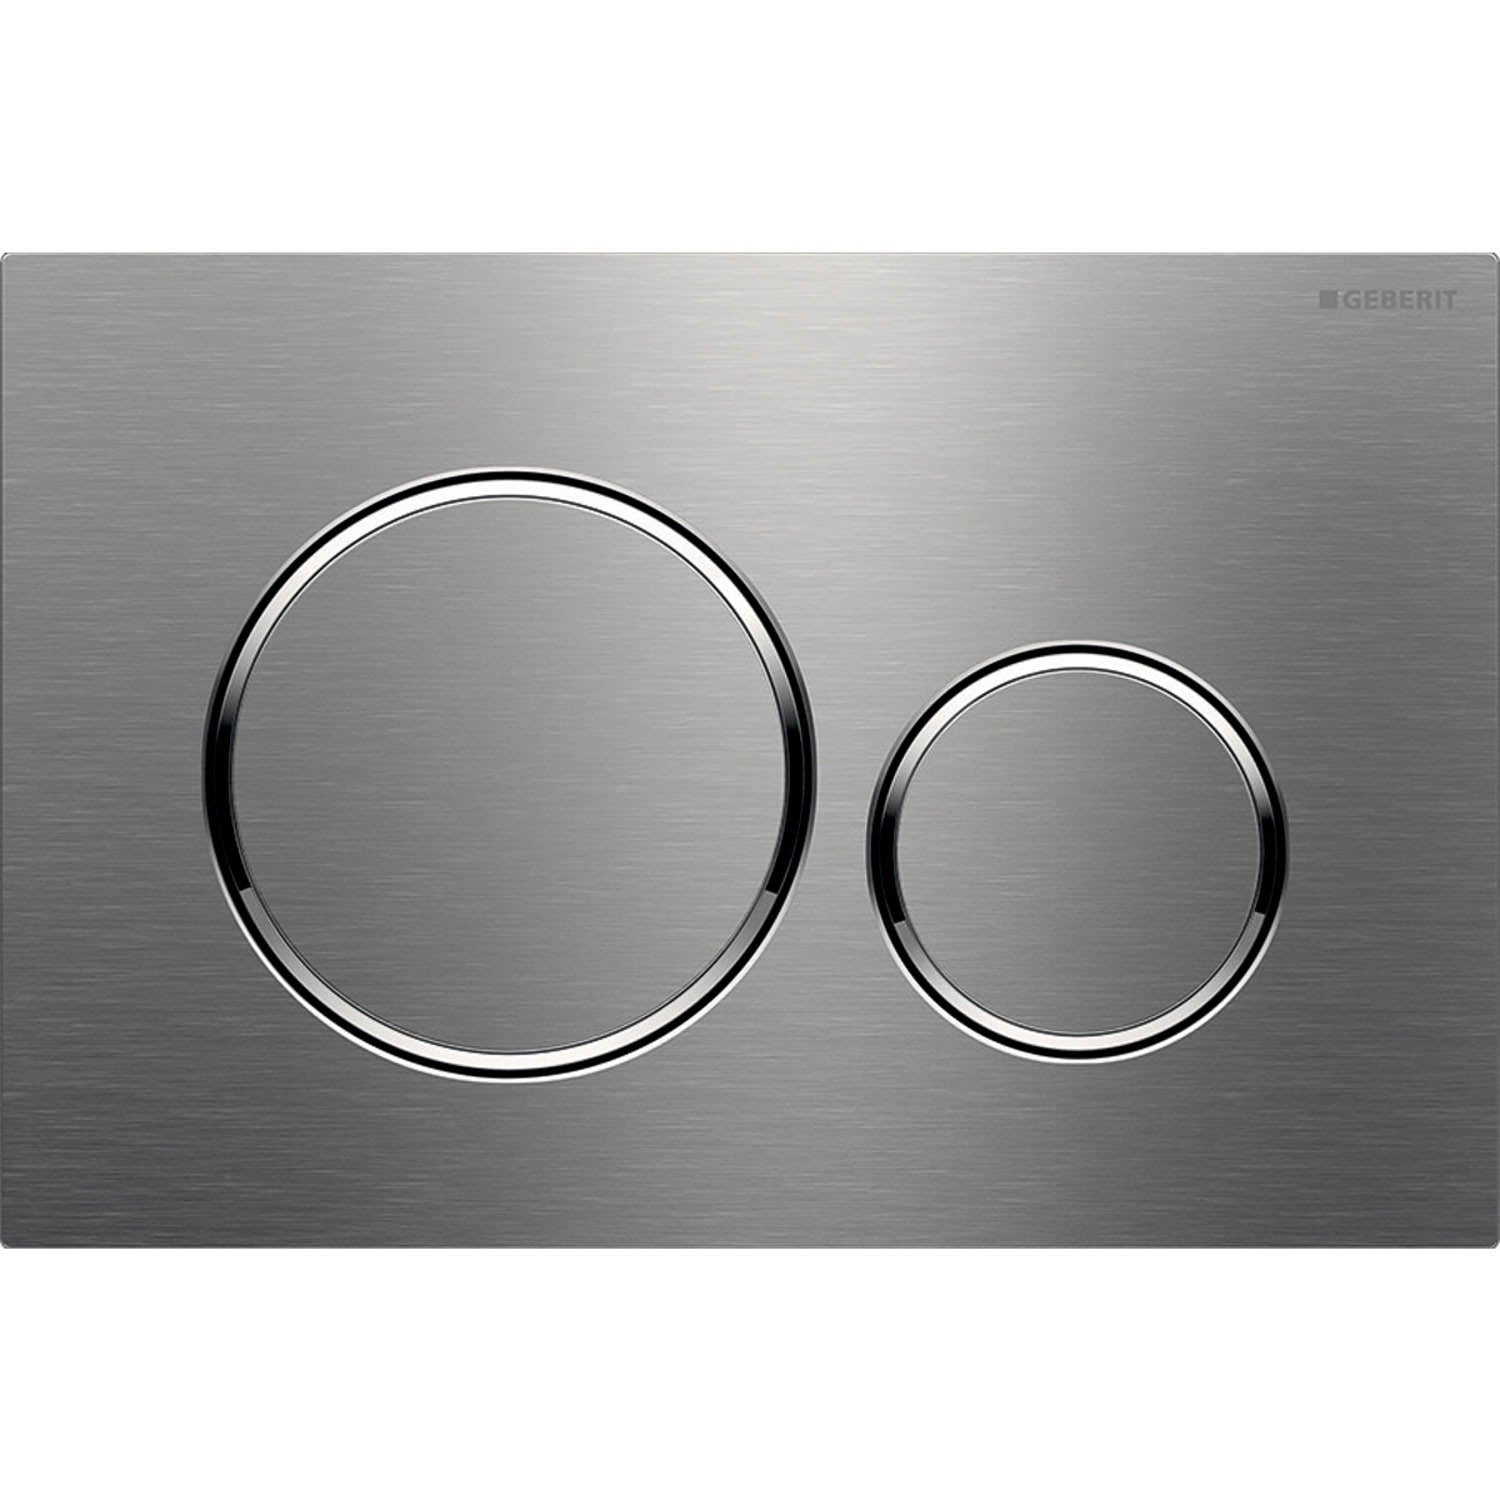 Sigma Round Dual Action Flush Plate with a brushed stainless steel finish on a white background